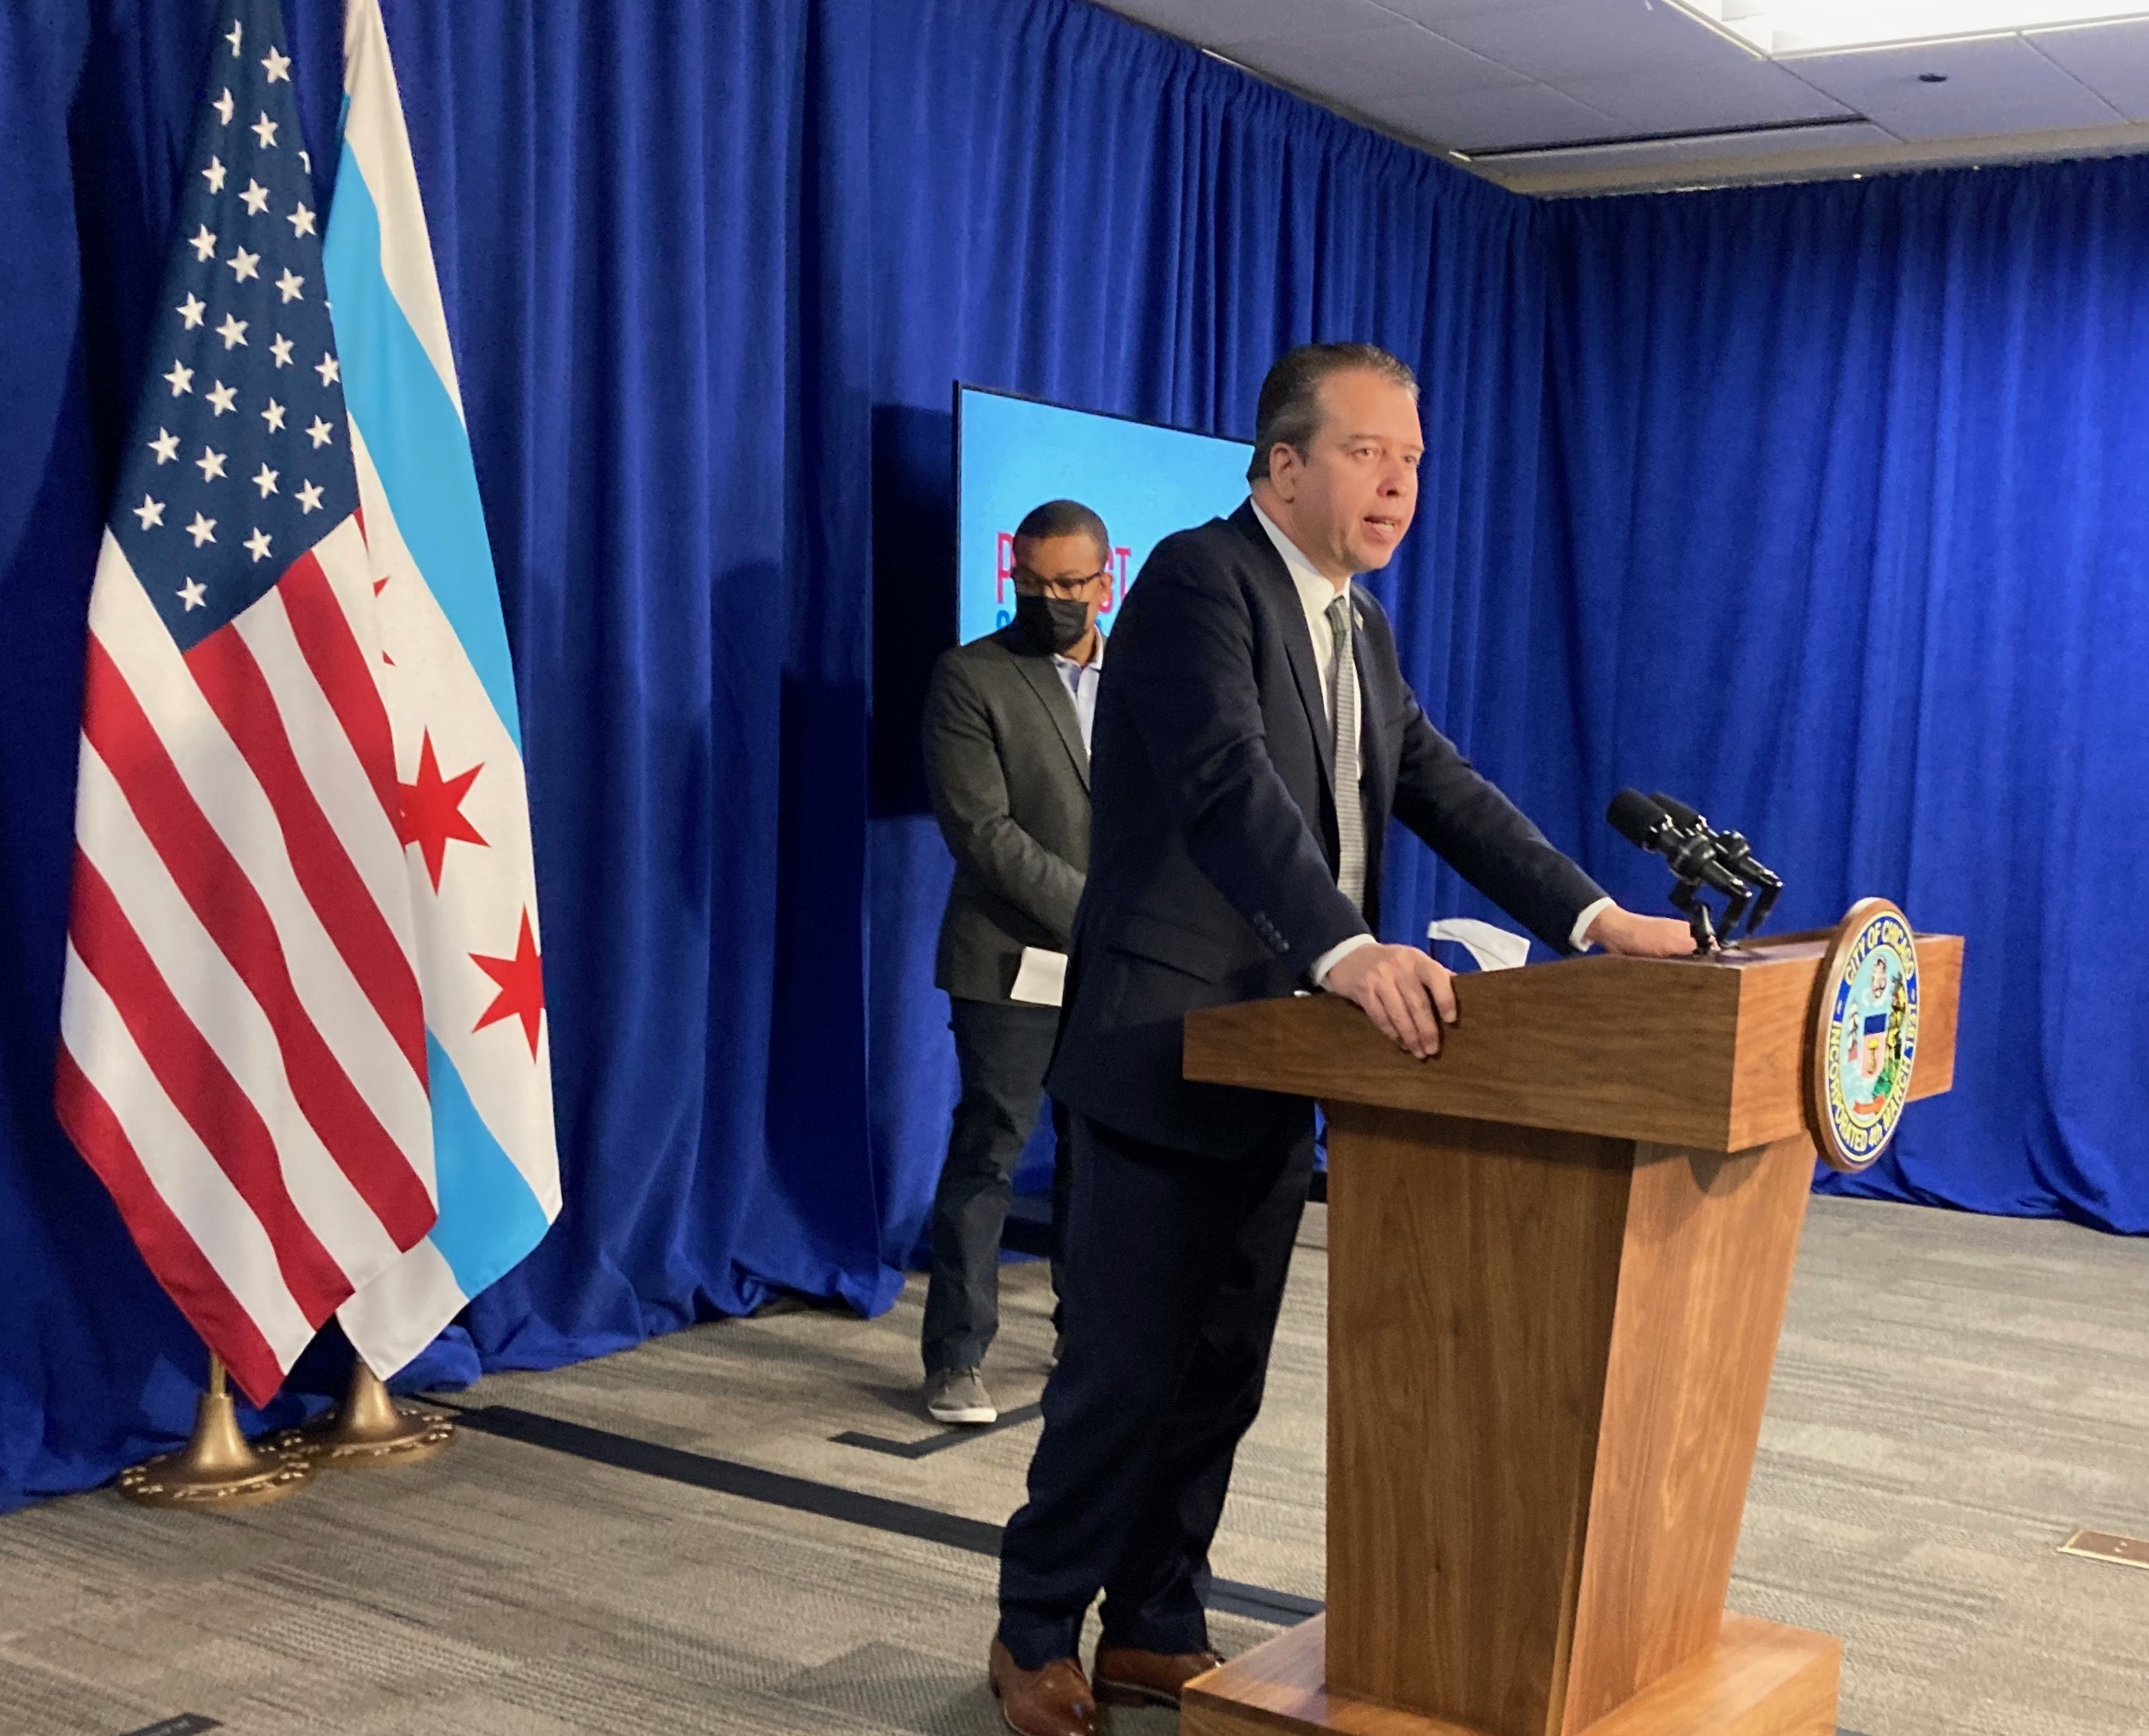 Speaking from a podium inside City Hall, Chicago schools chief Pedro Martinez promises more transparency about COVID-19 data on his second day on the job.